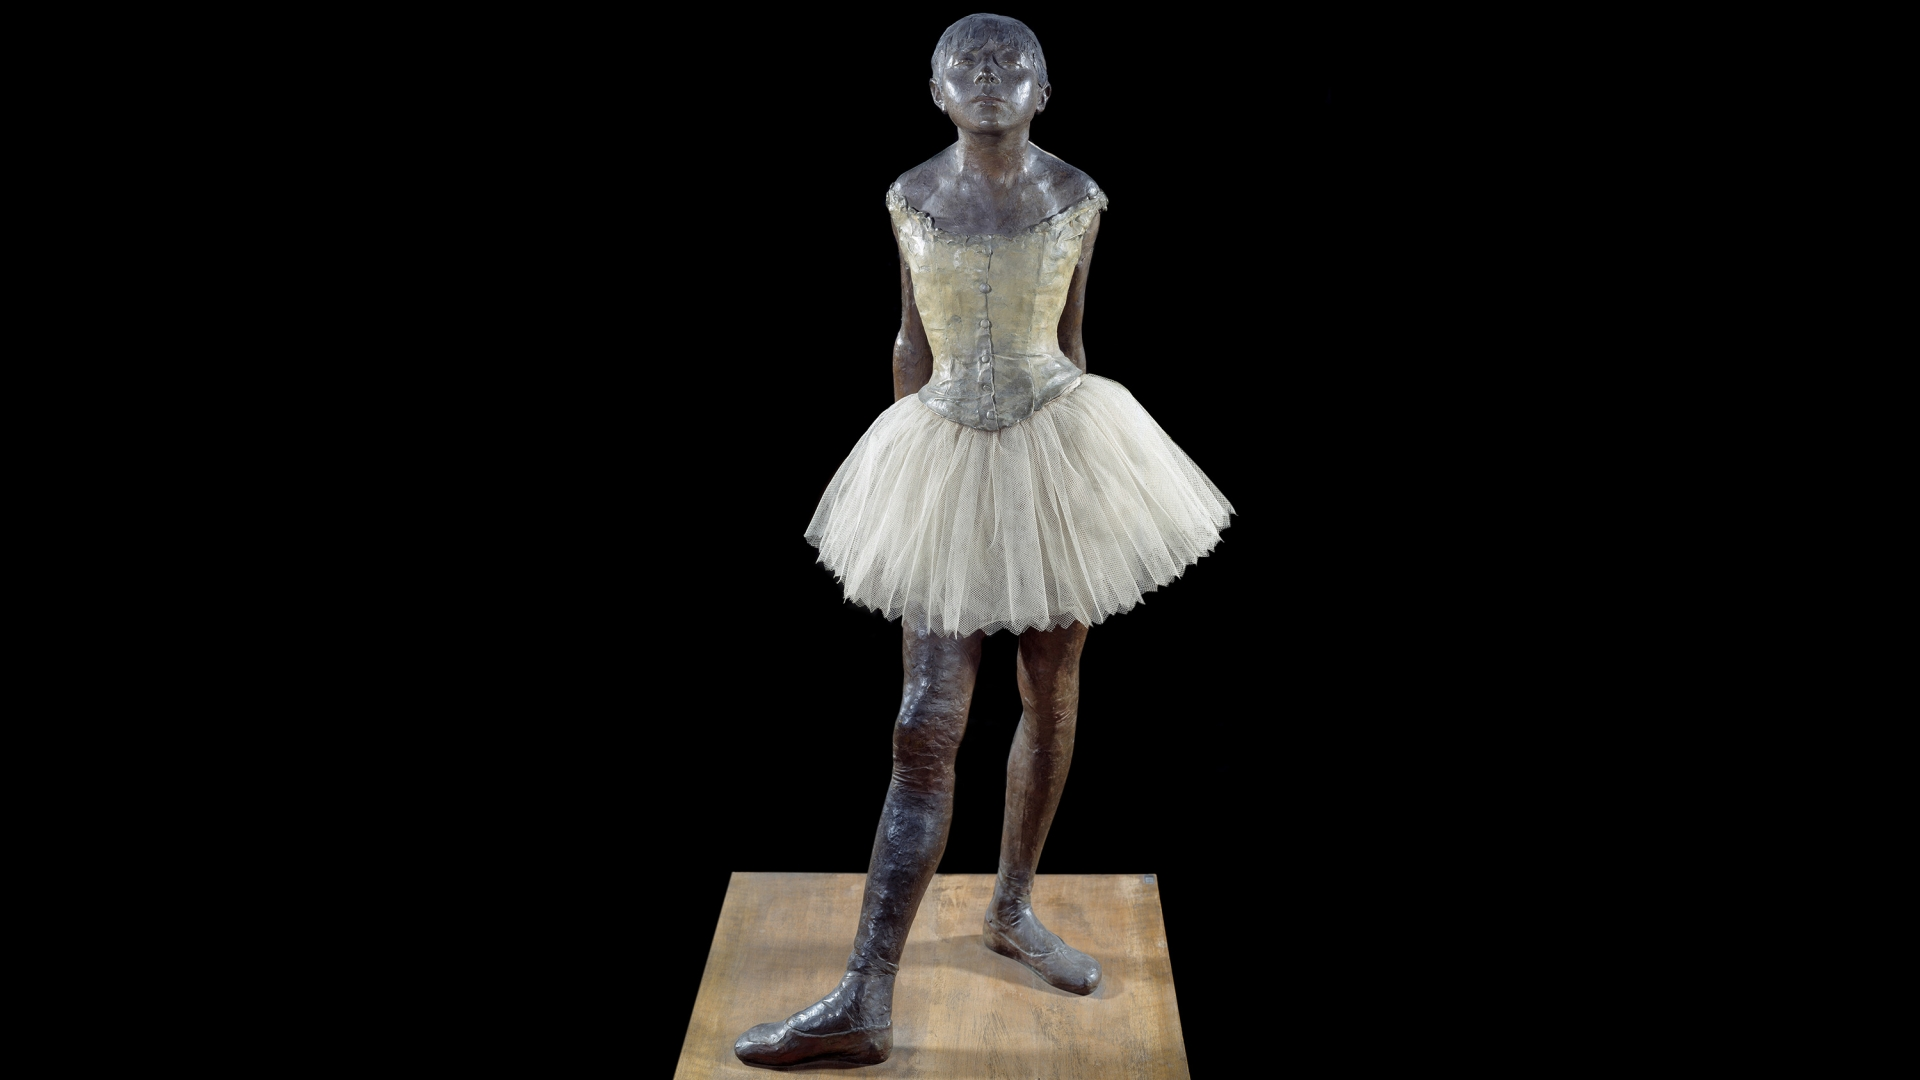 'Little Dancer of Fourteen Years' by Degas, 1881. (Credit: Leemage/Corbis via Getty Images)